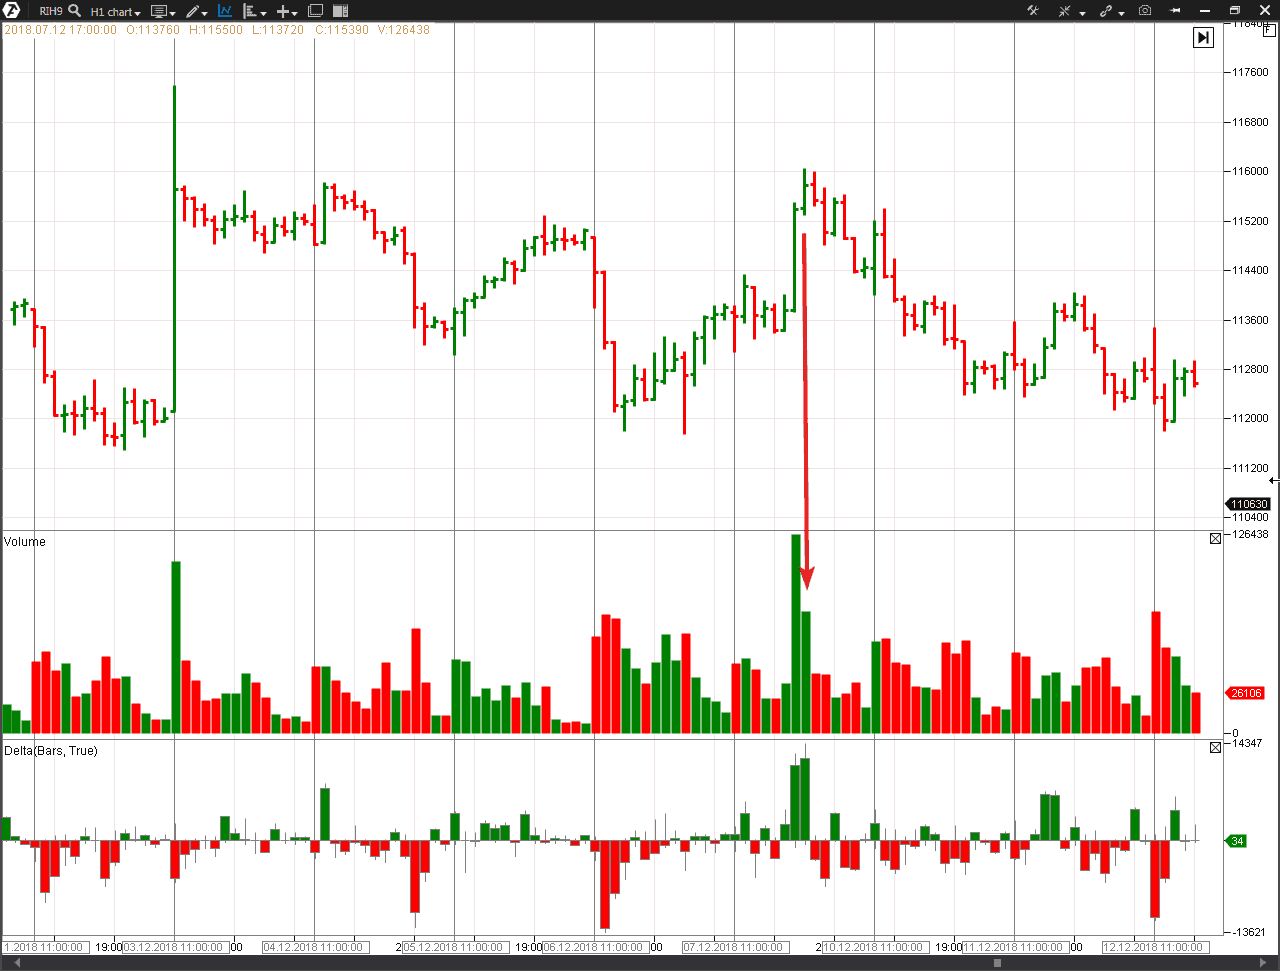 End of Rising Market in the RTS futures market